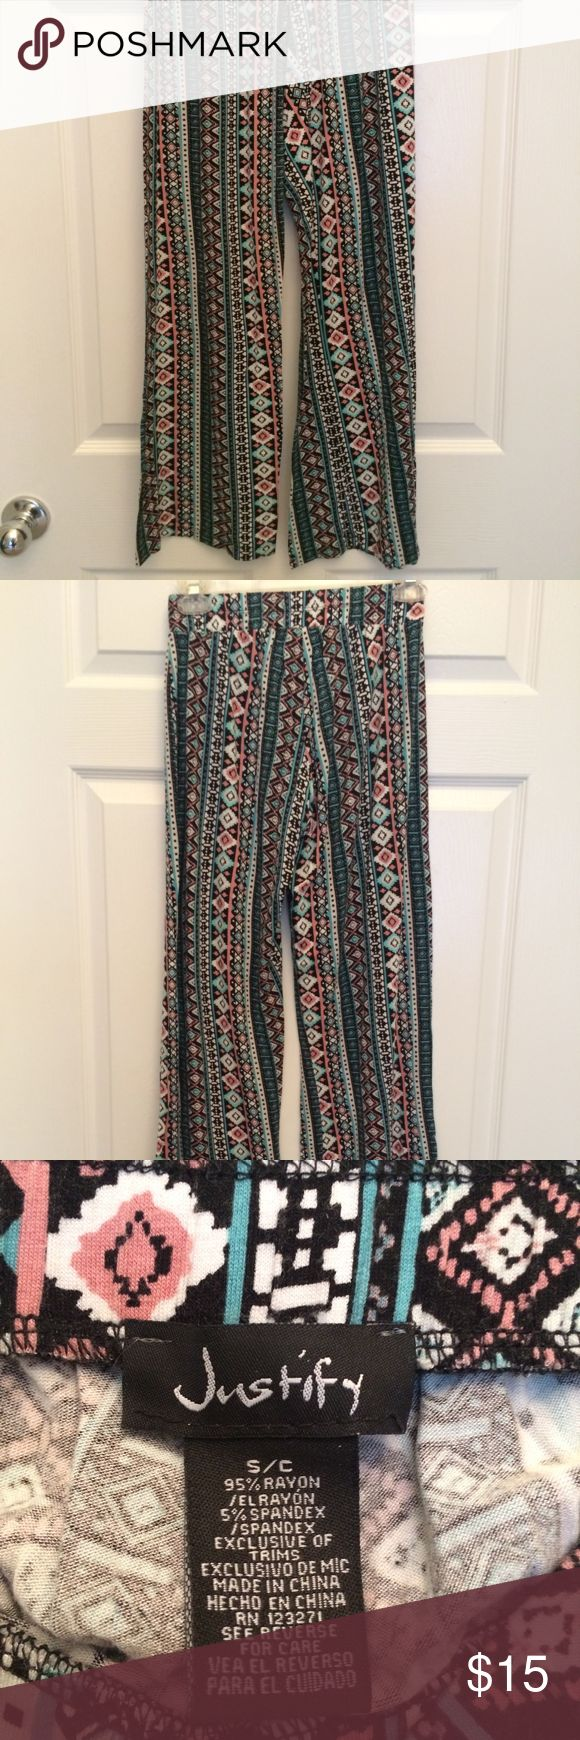 Multi-color Aztec Print Flowy Pants Incredibly soft and comfy. Elastic waistband. Fun pattern! 95% rayon, 5% spandex Justify Pants